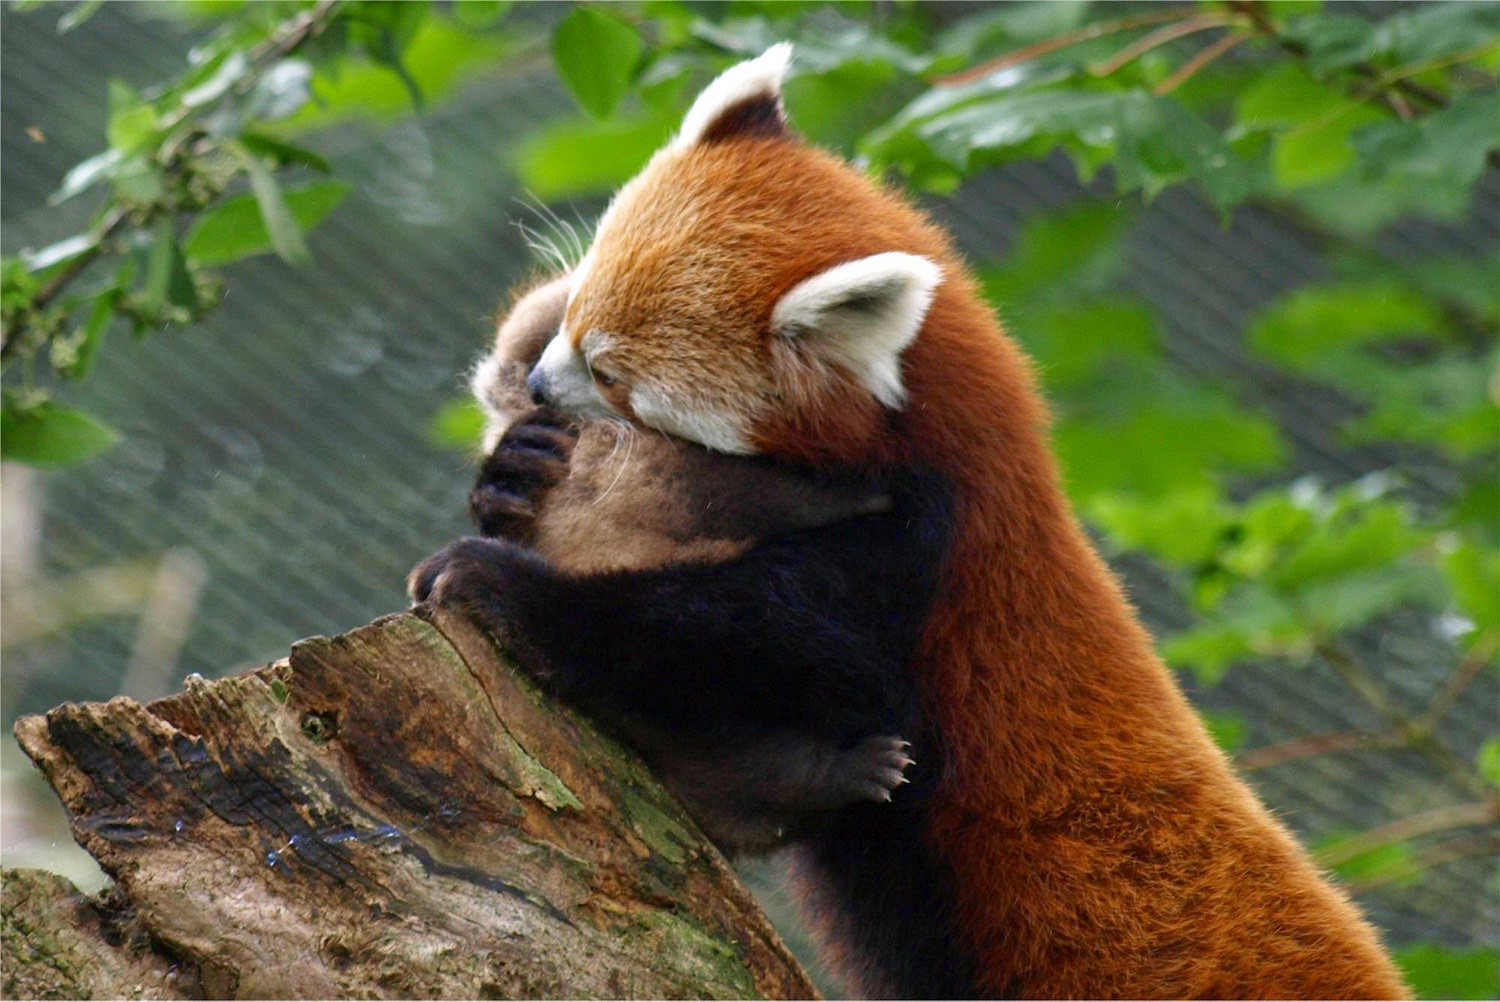 40 Adorable red panda pictures (40 pics), momma red panda hugging her baby